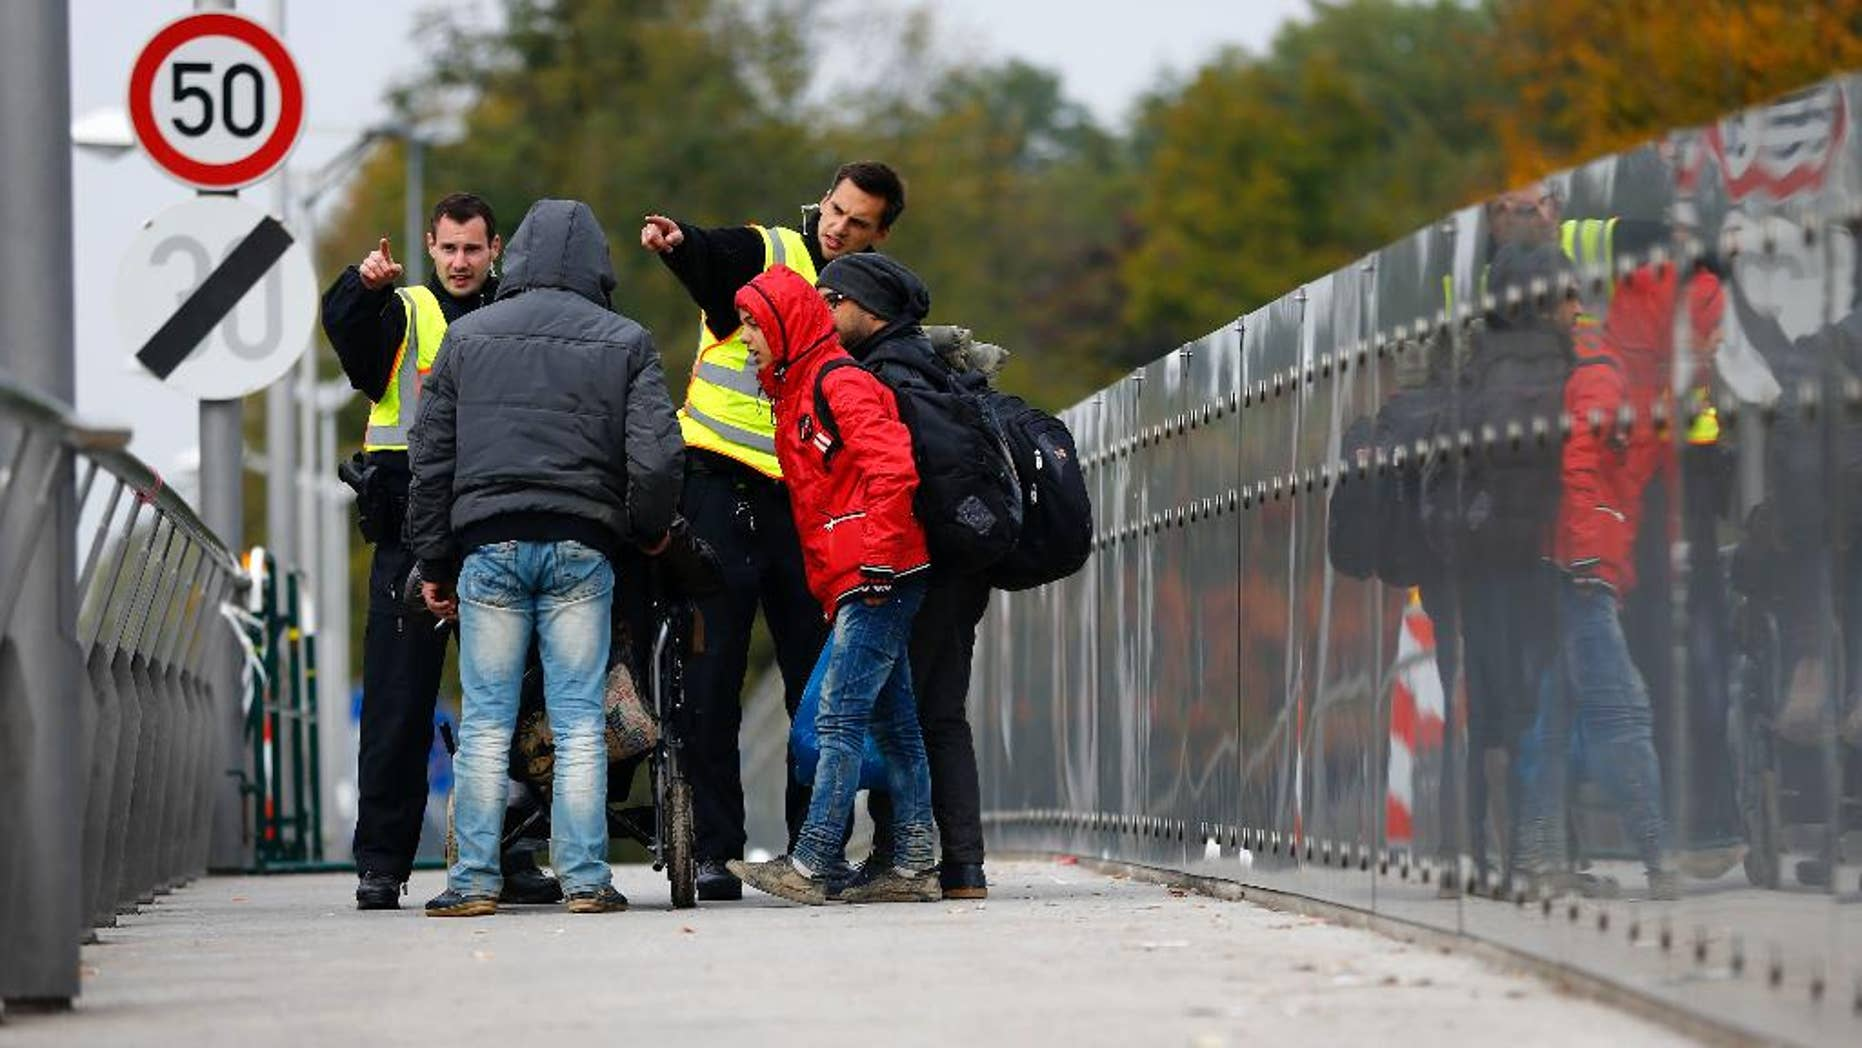 German federal police officers talk to arriving migrants on a bridge at the border between Austria and Germany in Freilassing near Salzburg, Germany, Tuesday, Oct. 13, 2015. (AP Photo/Matthias Schrader)